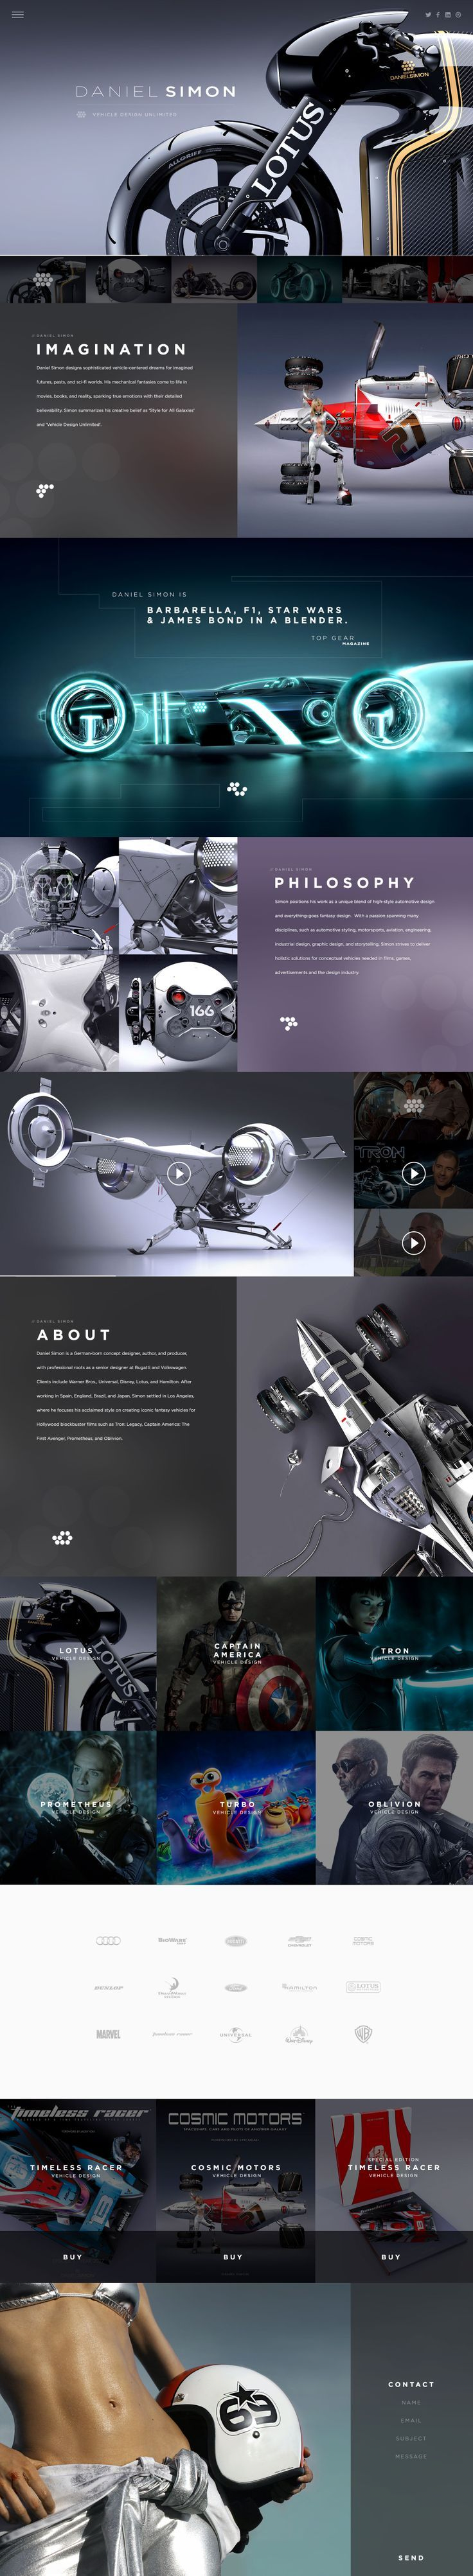 #Awesome #Inspiration Daniel Simon Website by Lance Culbreth